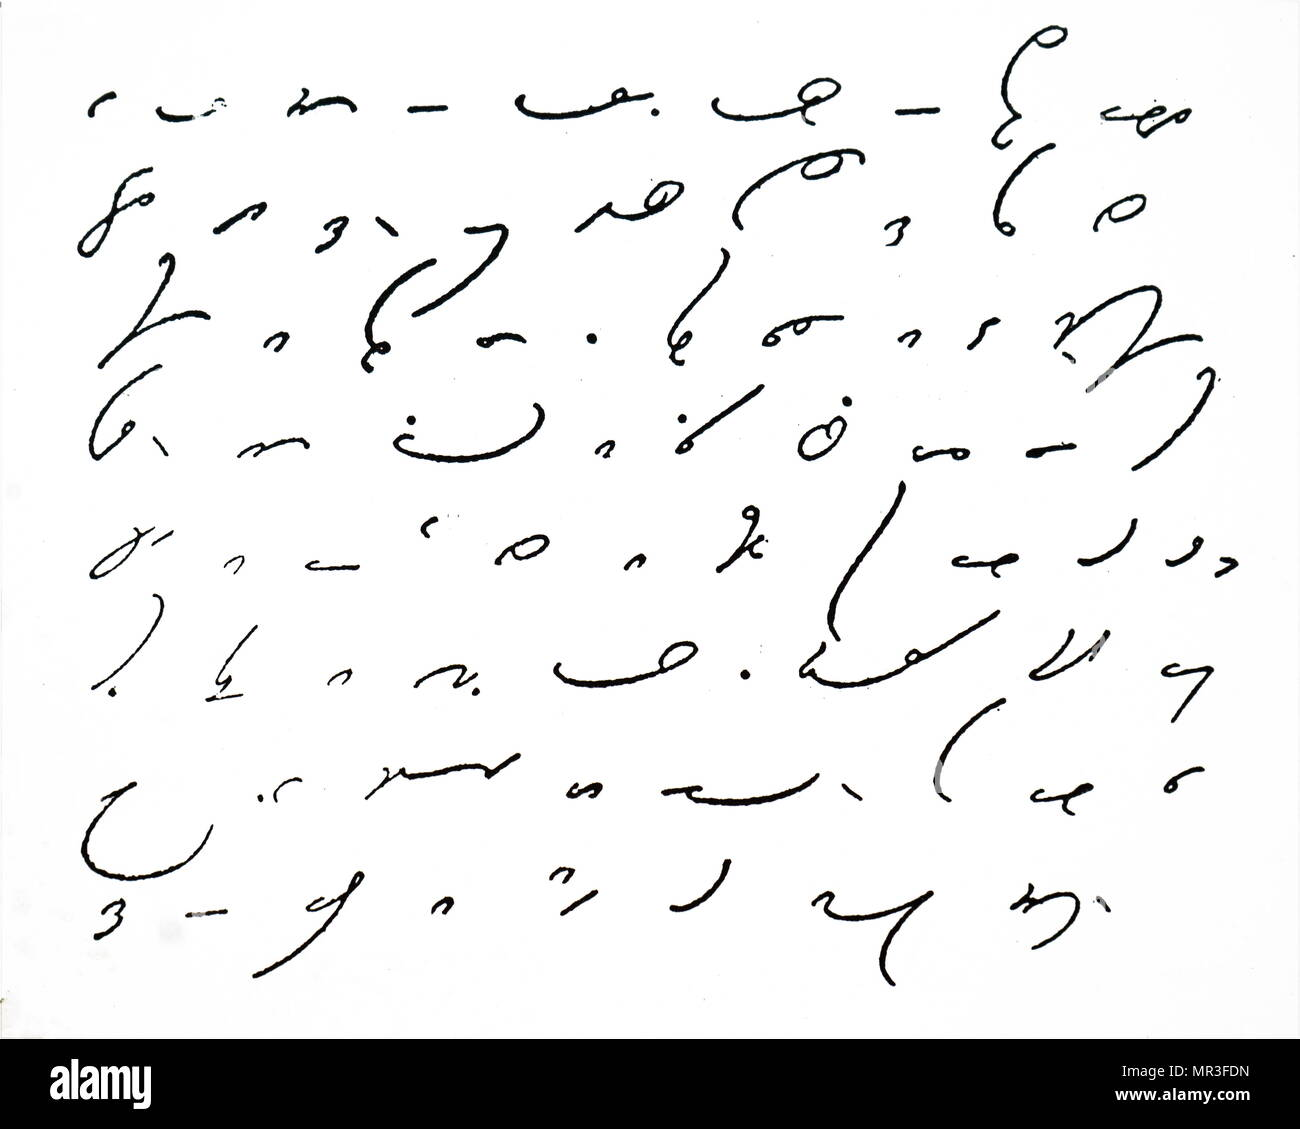 Sample of Gregg shorthand, a form of shorthand that was